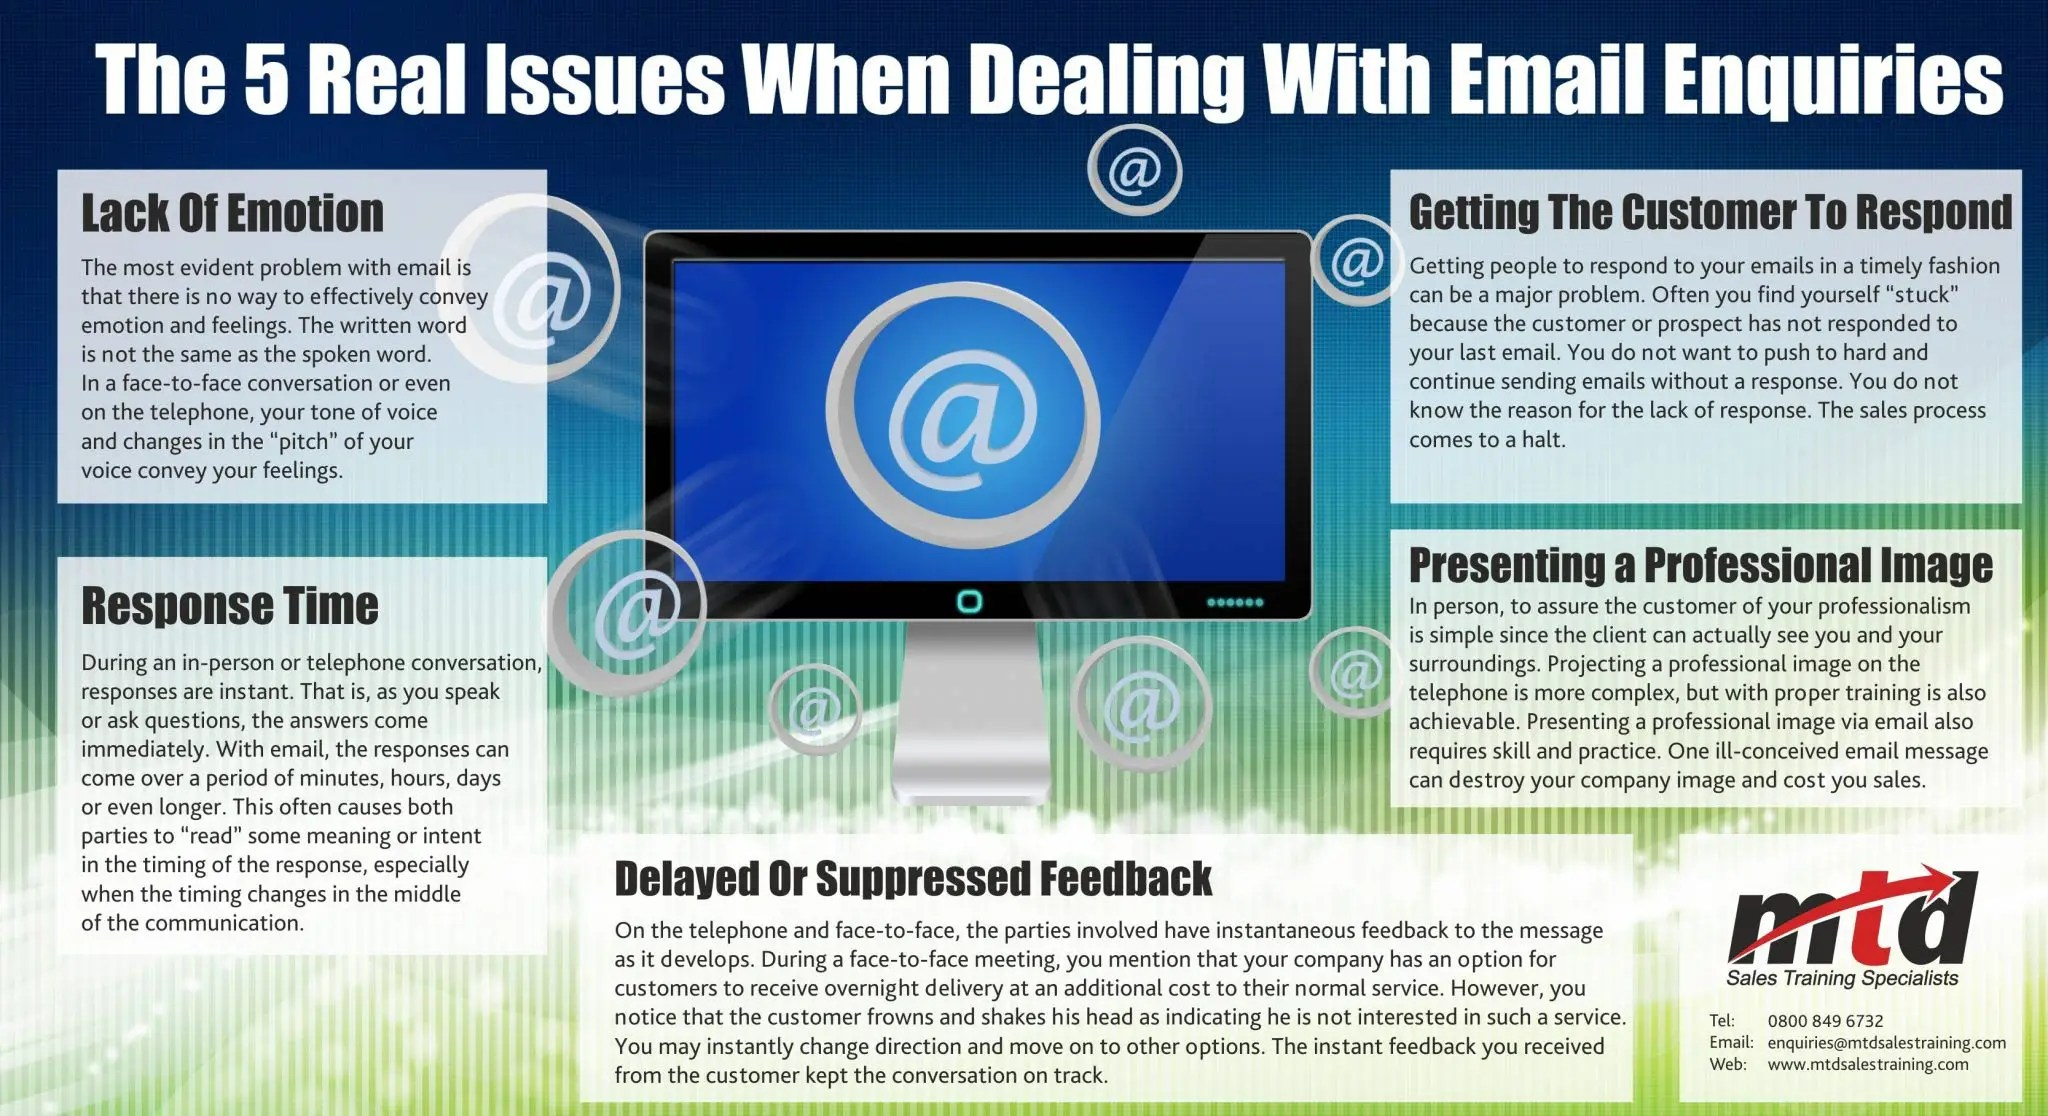 The 5 Real Issues When Dealing With Email Enquiries – Infographic